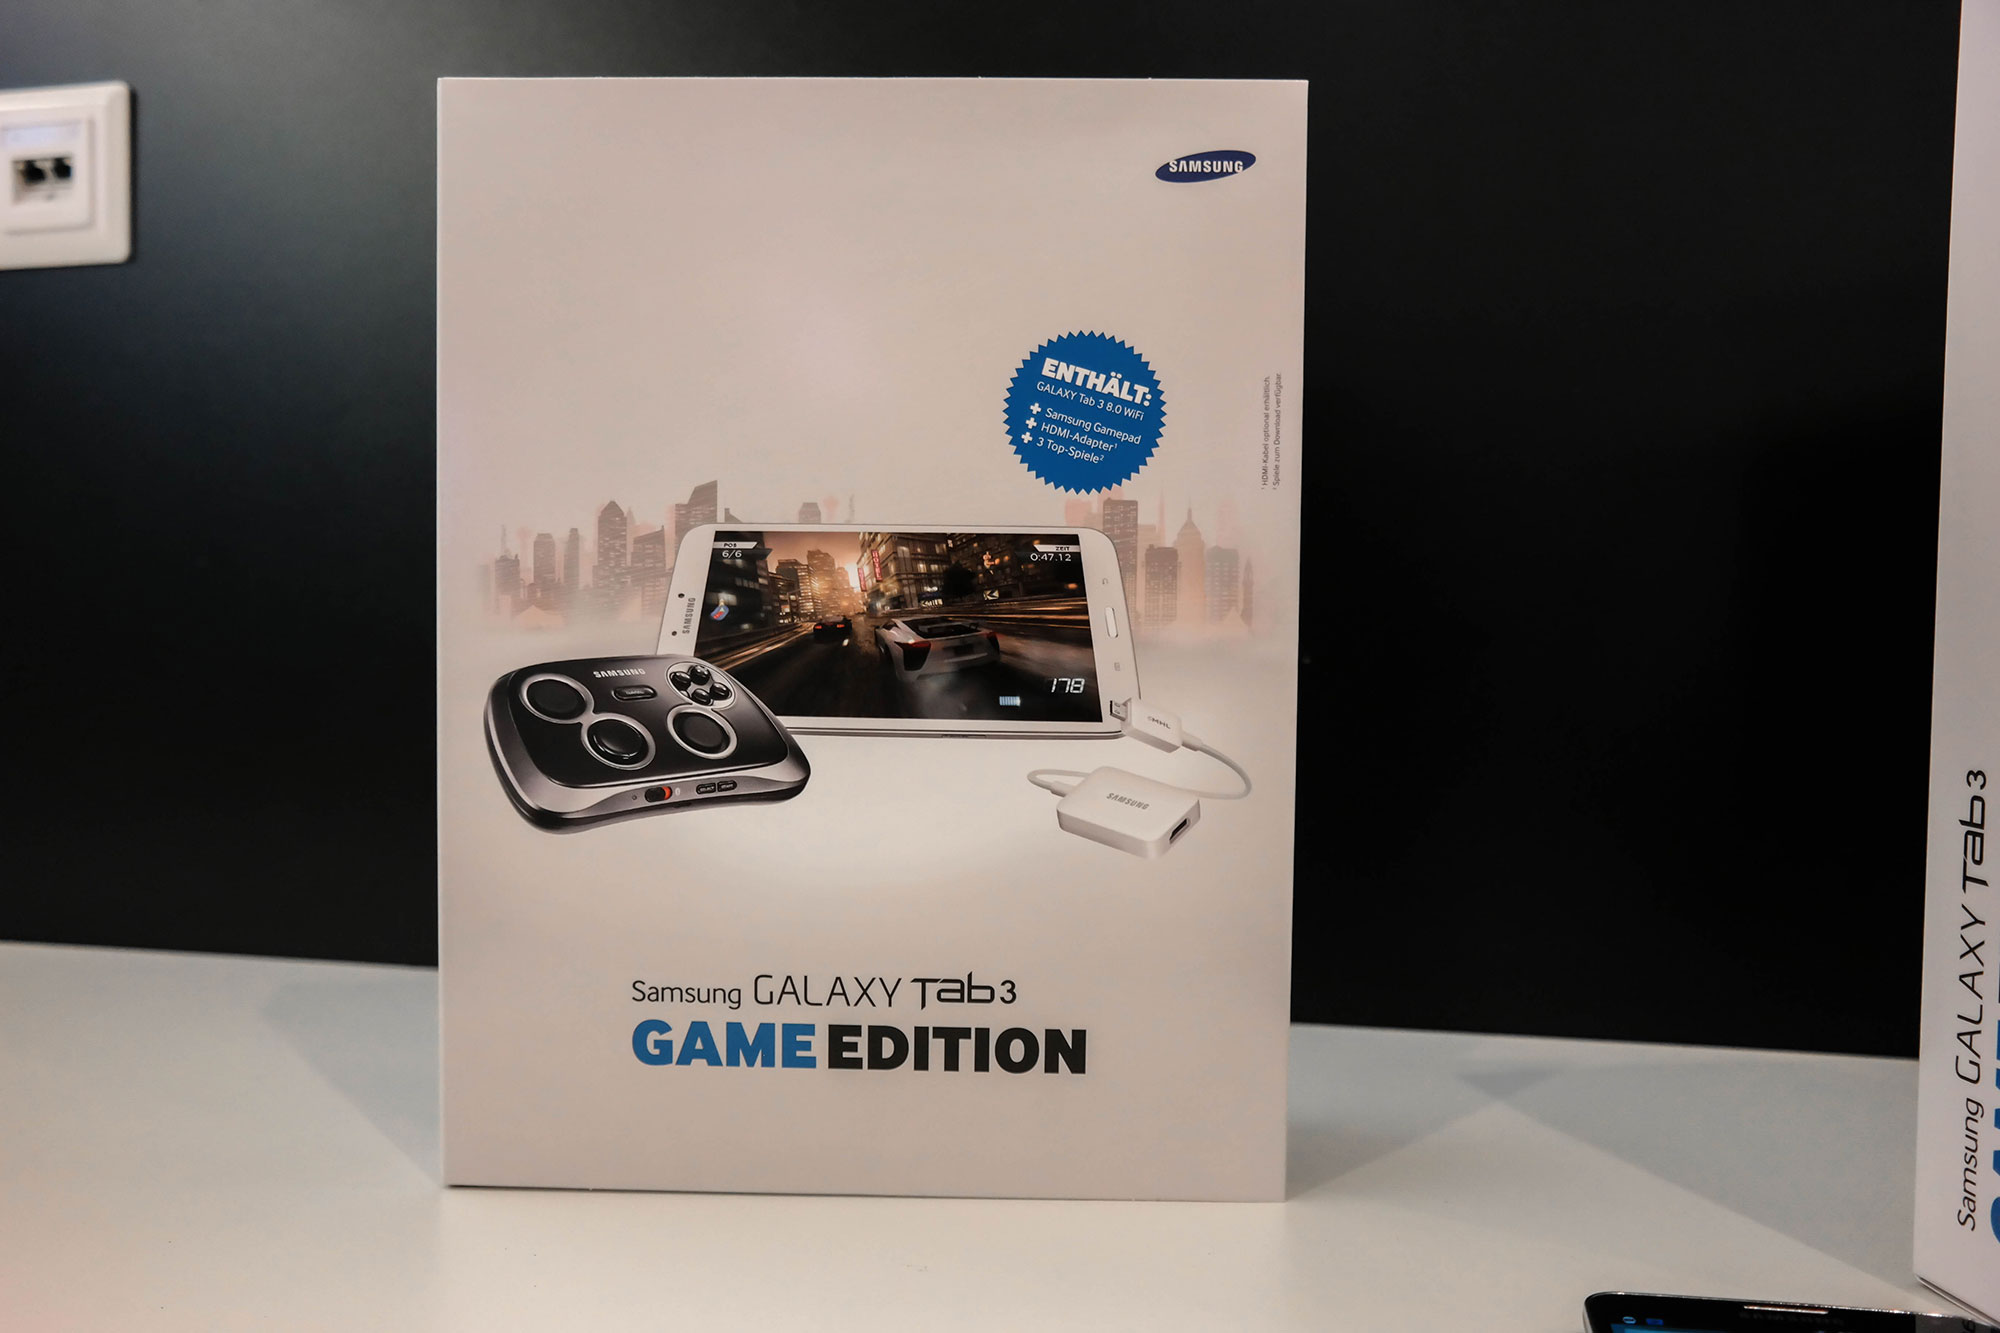 Galaxy Tab 3 GamePad Edition